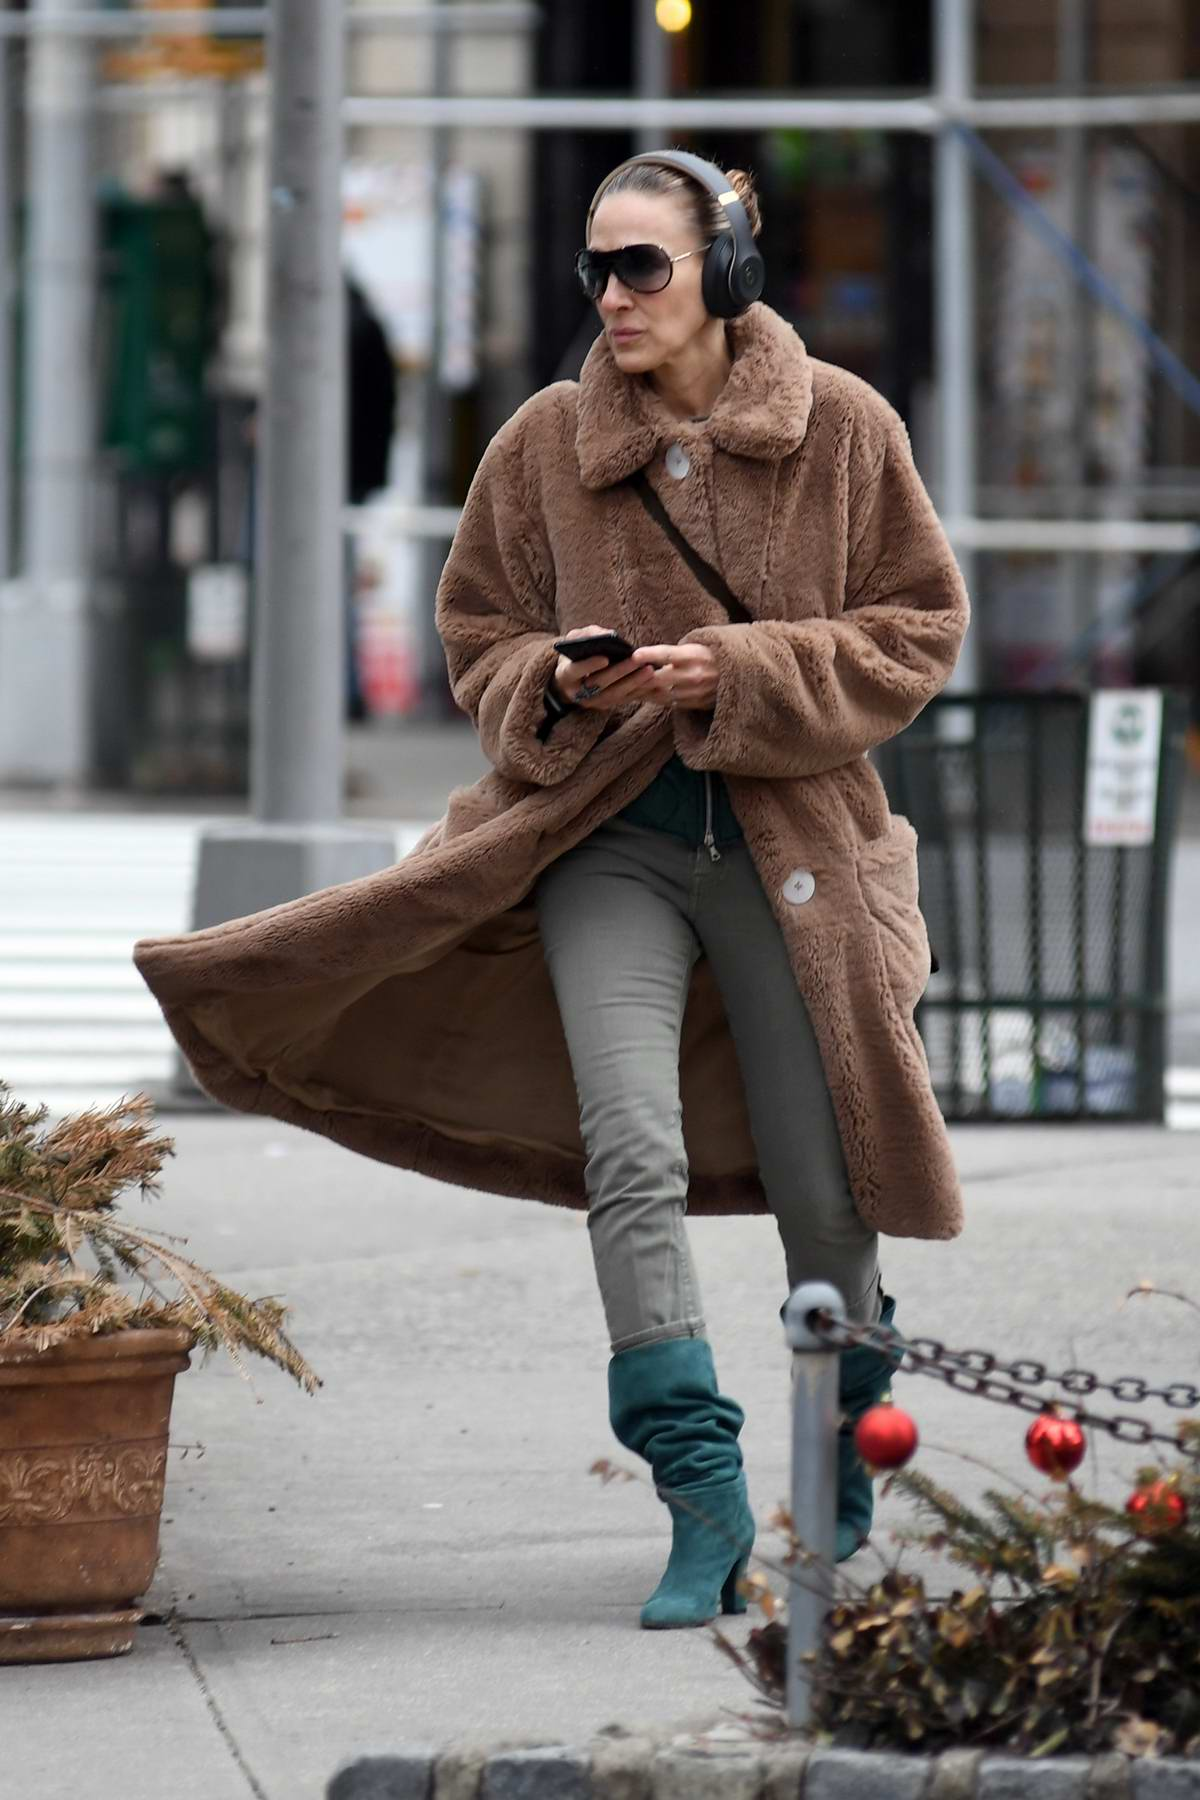 Sarah Jessica Parker wearing headphones and a cozy brown coat while out in New York City